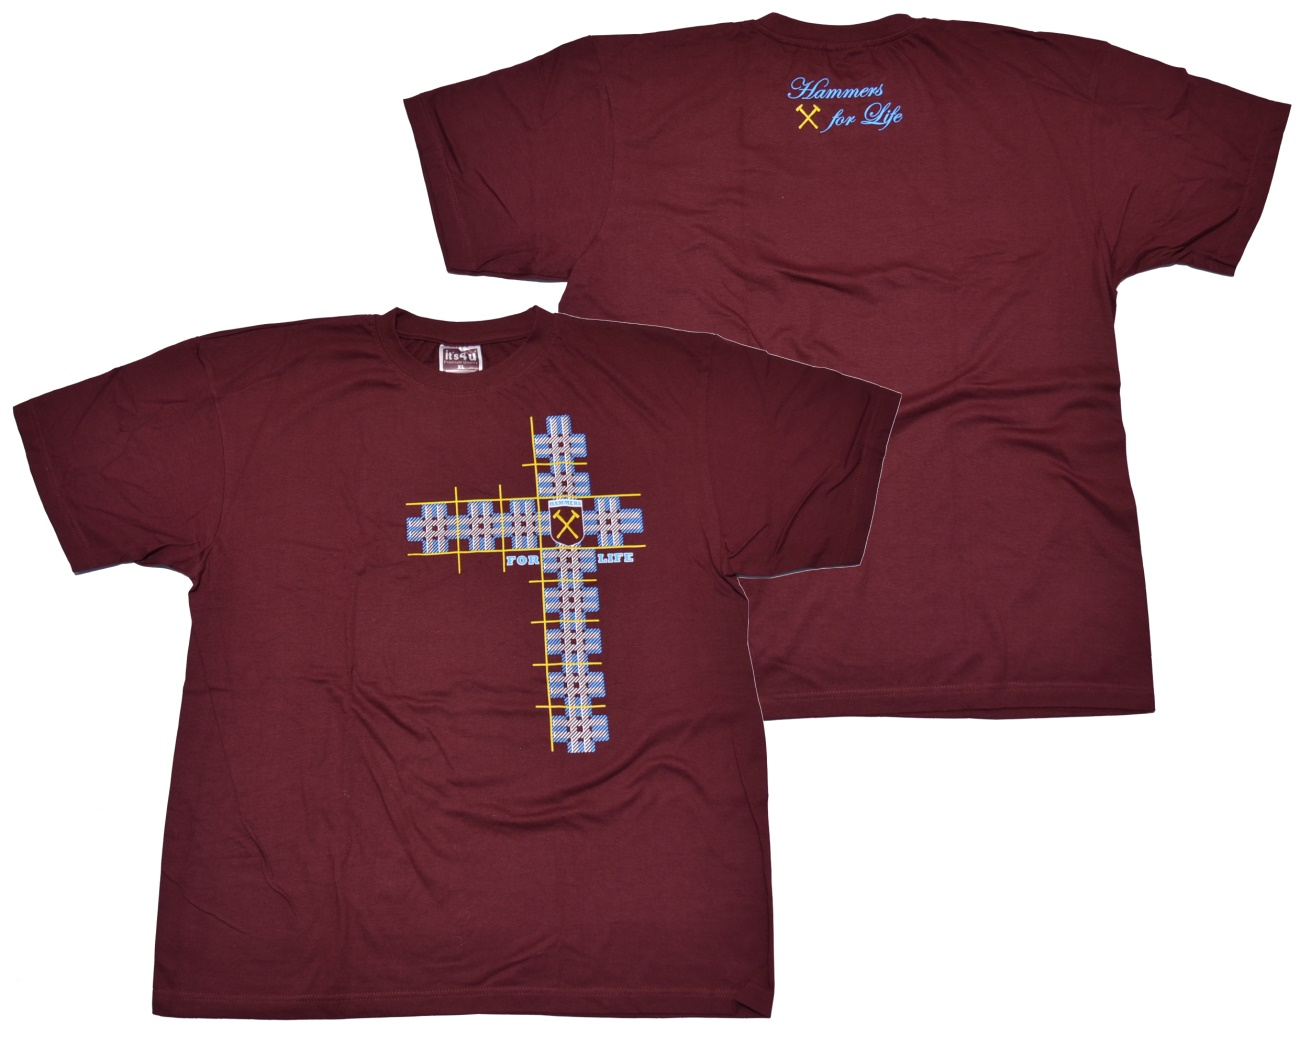 West Ham United T-Shirt